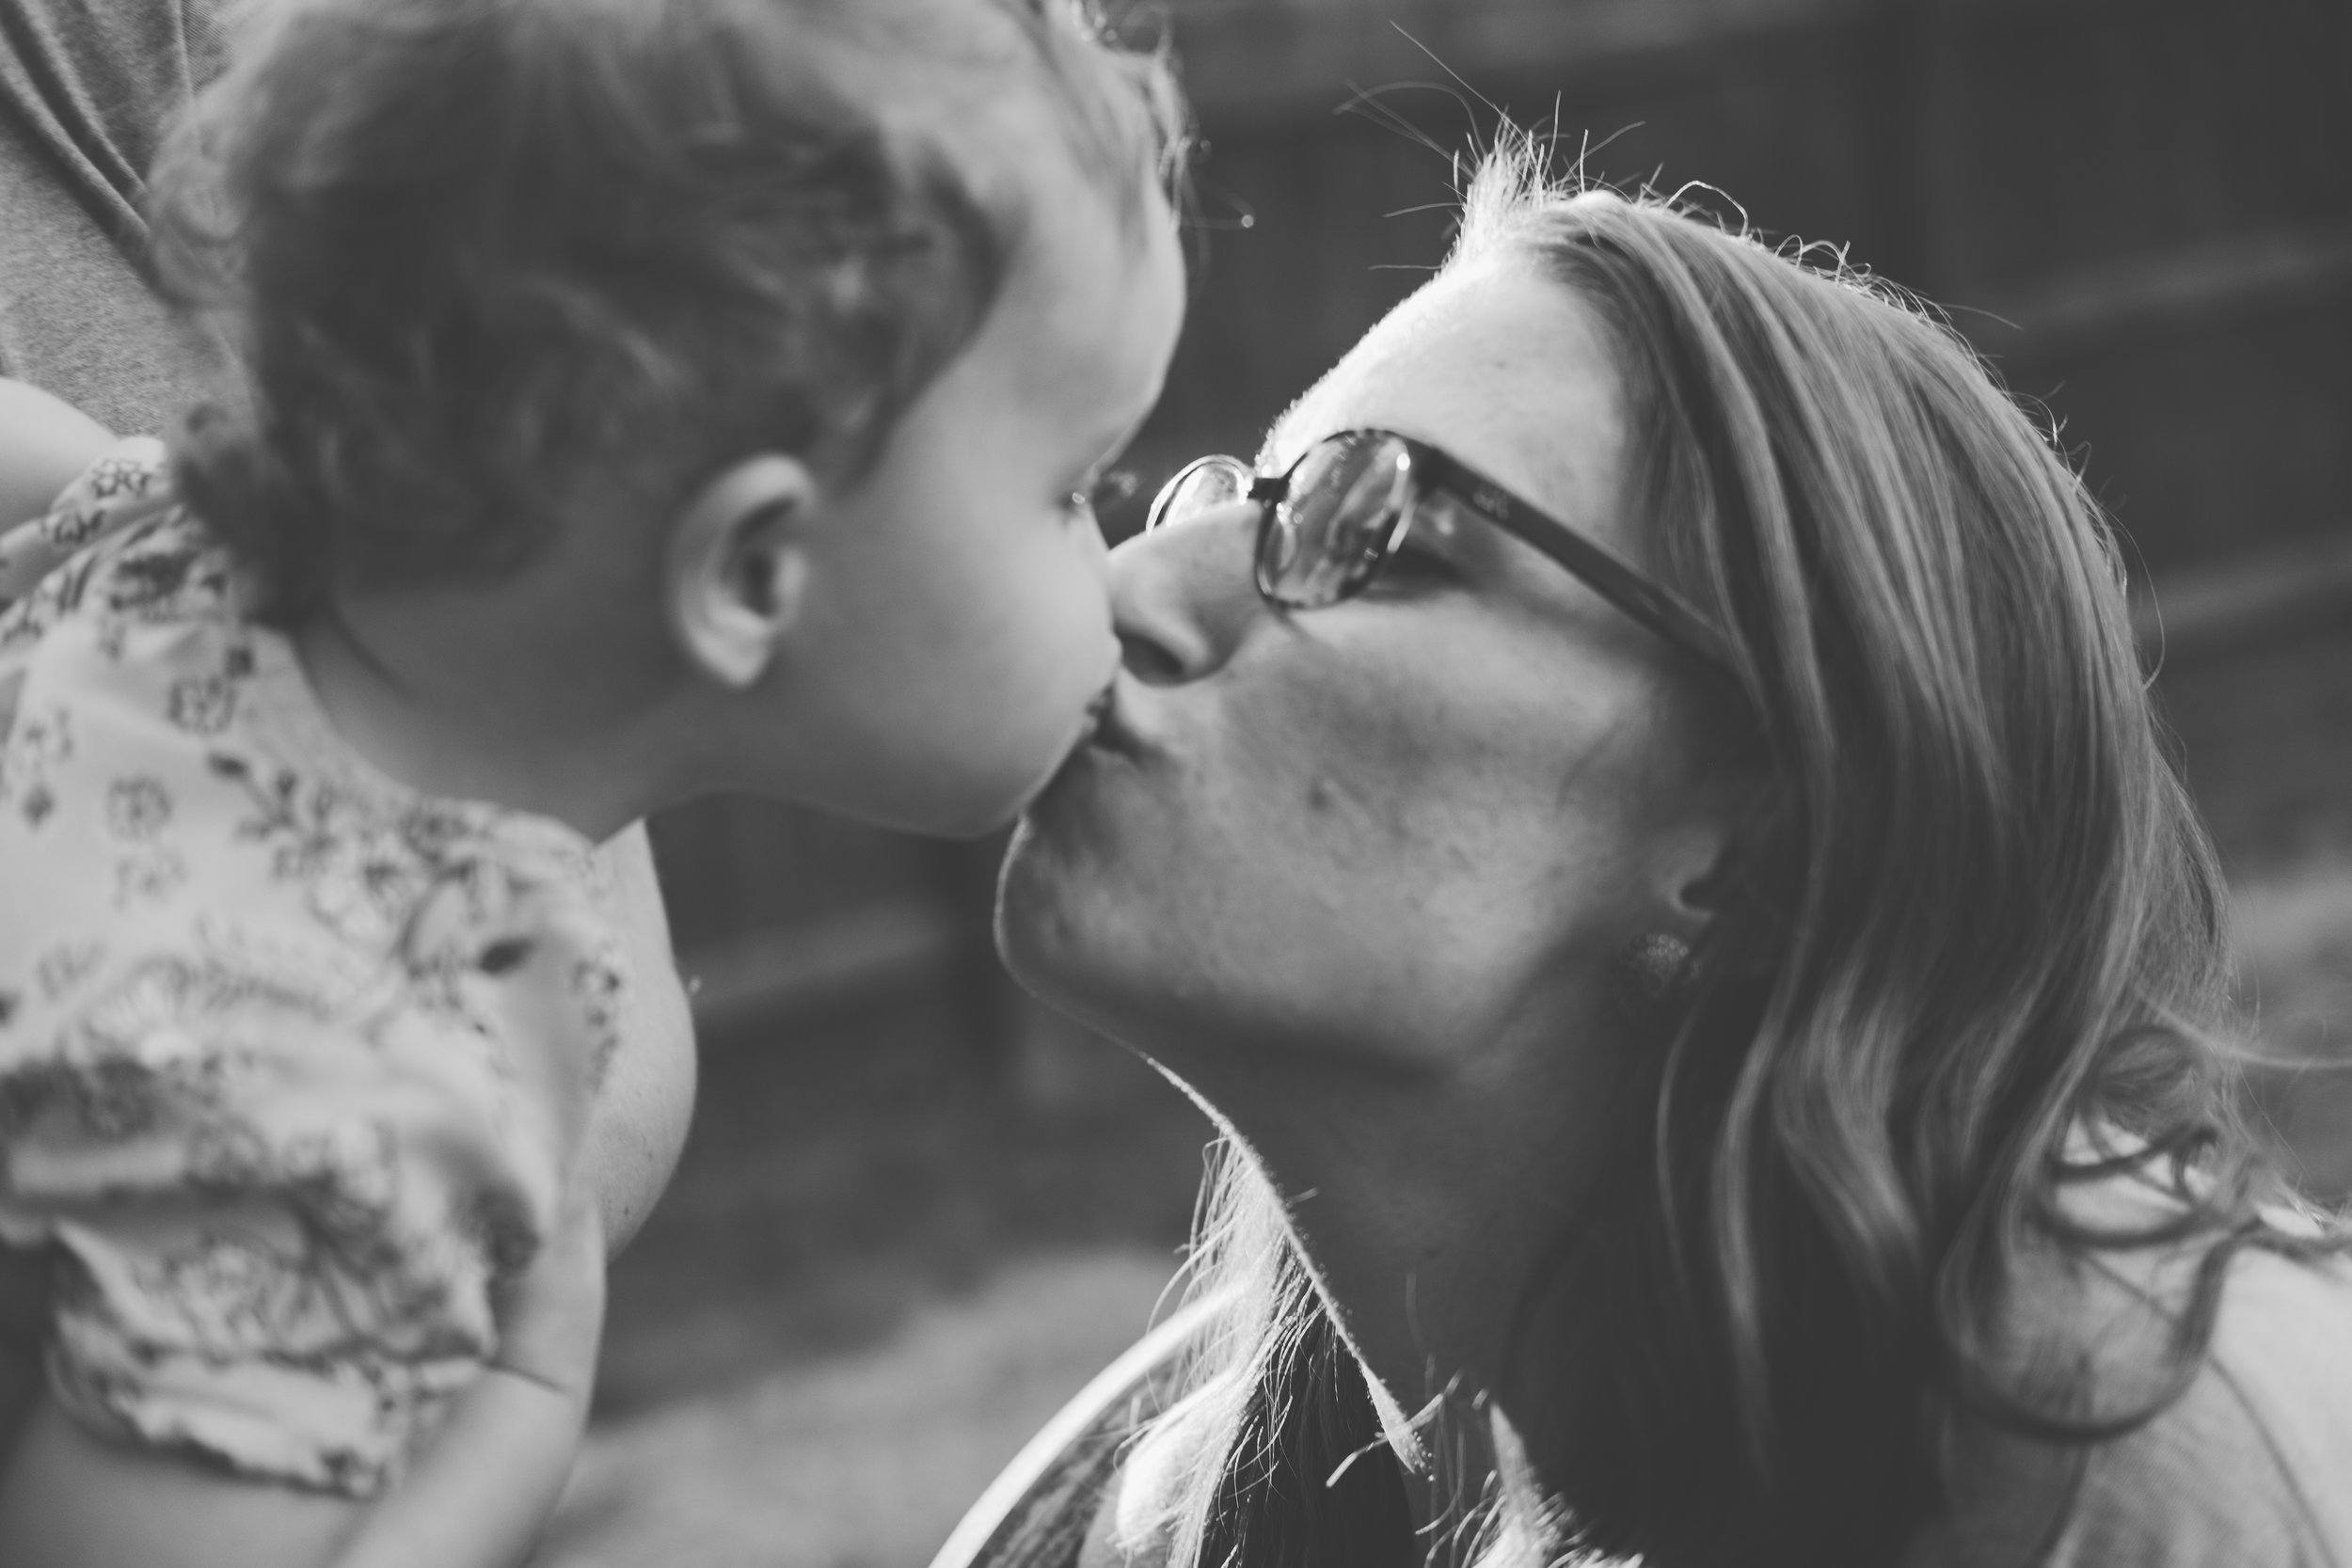 Woman with glasses kissing young child